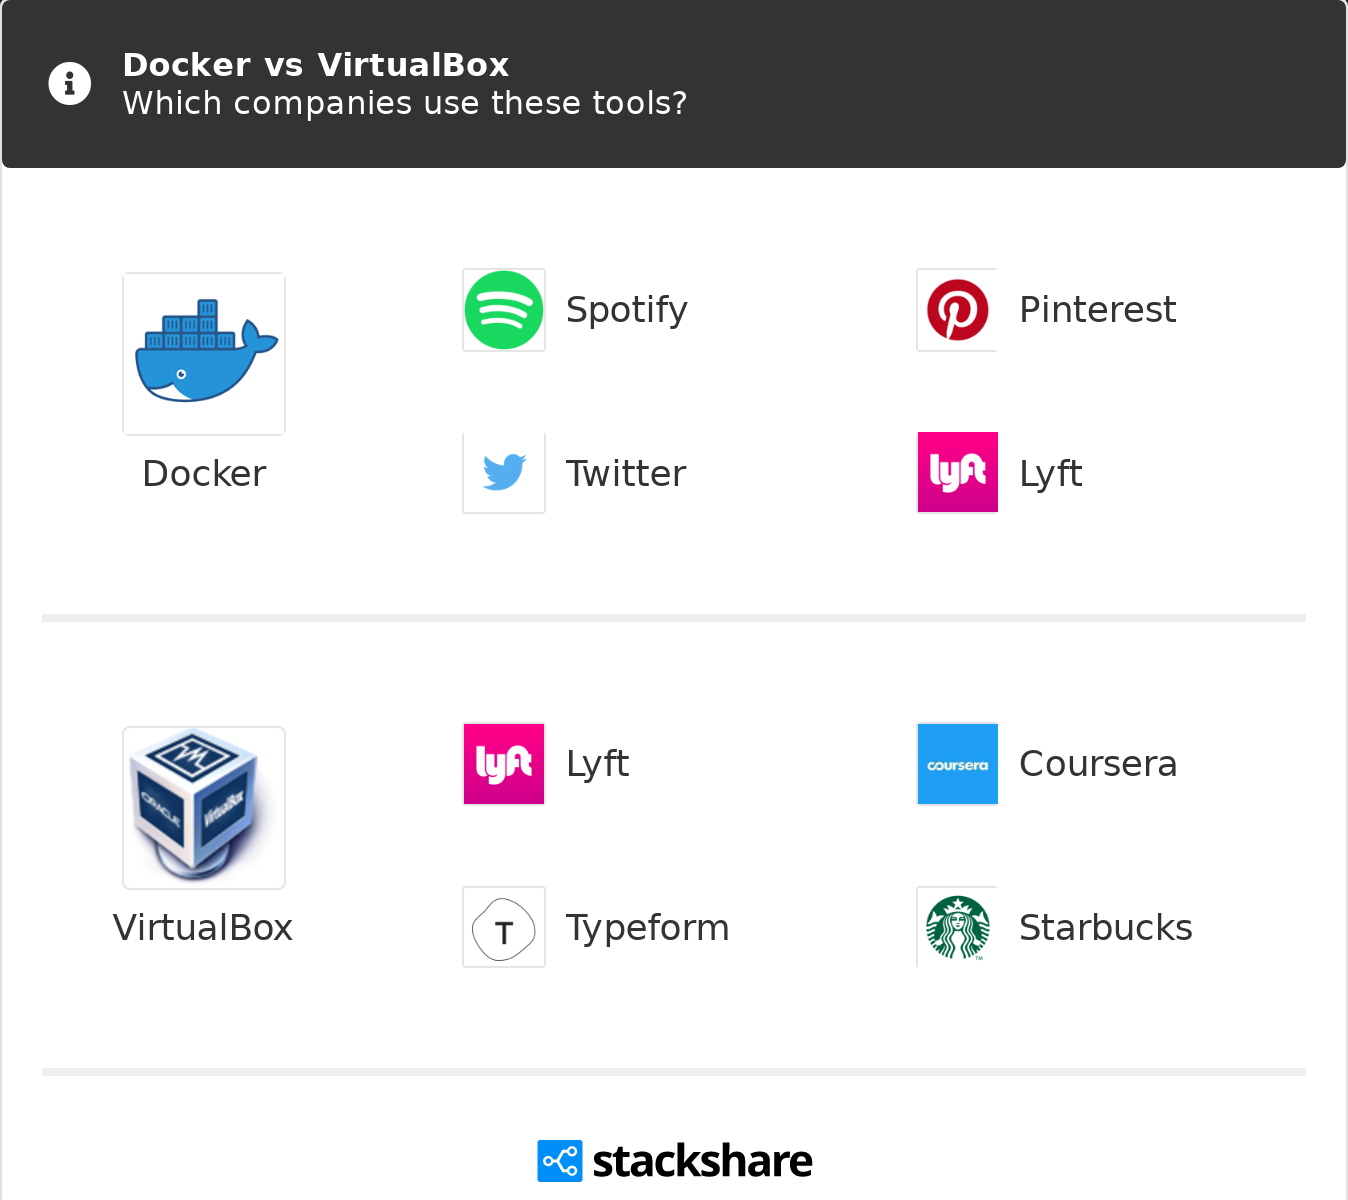 Docker vs VirtualBox | What are the differences?